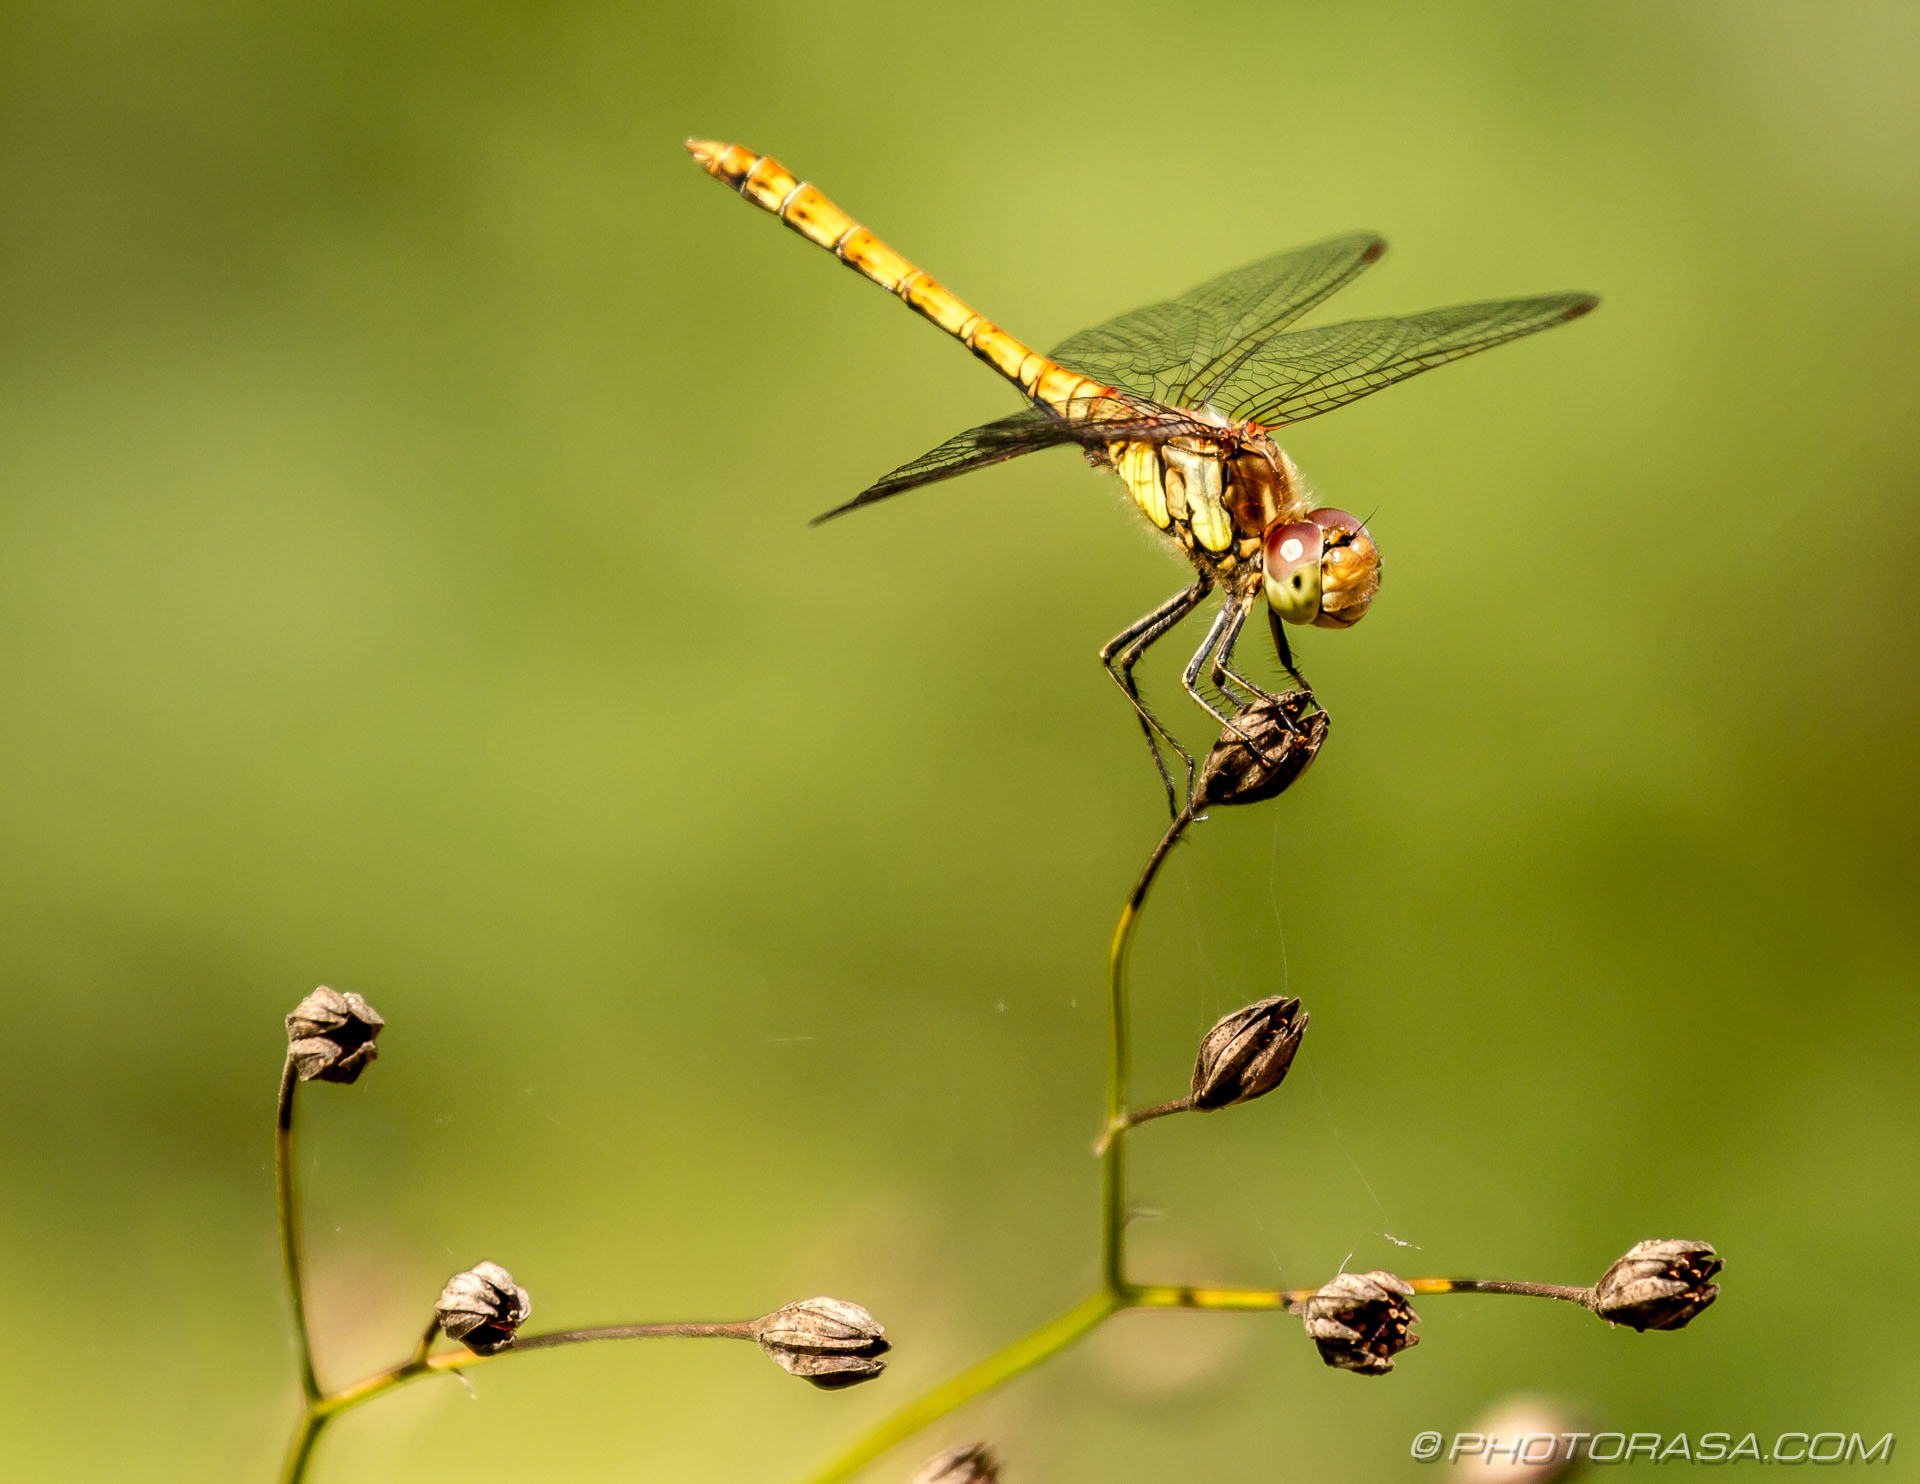 http://photorasa.com/dragonflies/female-common-darter-perched-on-plant-3/